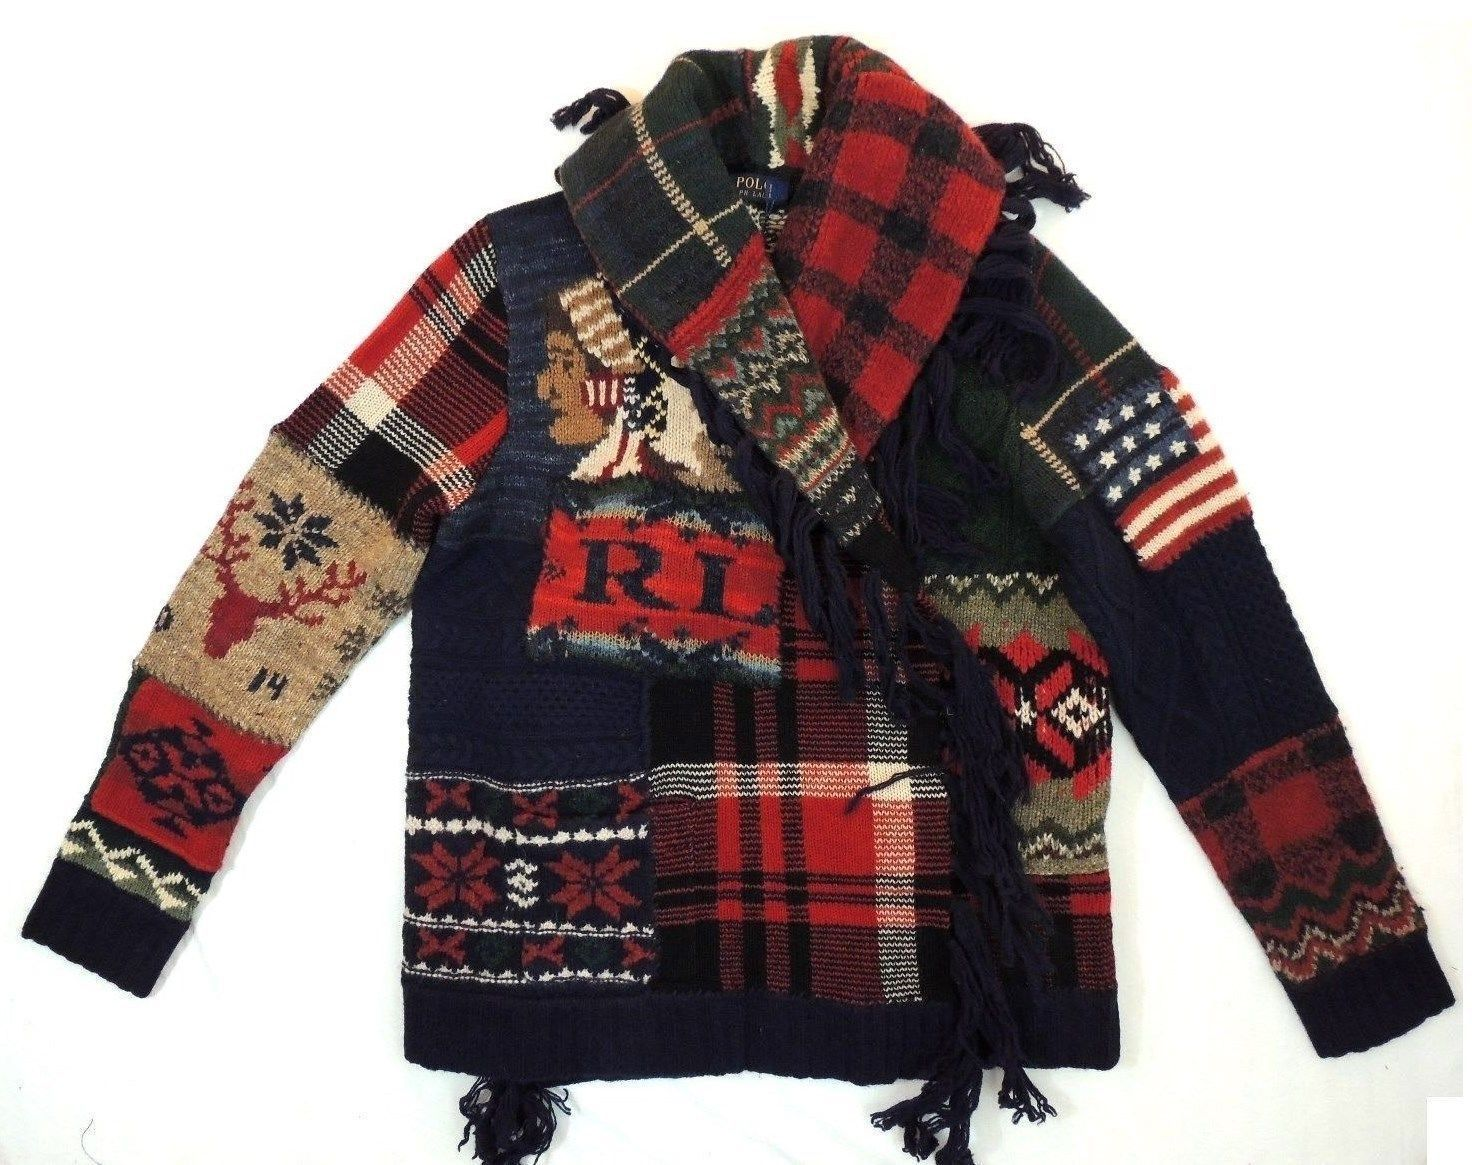 Polo Ralph Lauren Indian Head Chief Flag Patchwork Sweater Cardigan Jacket  XS S   eBay 07406a317f